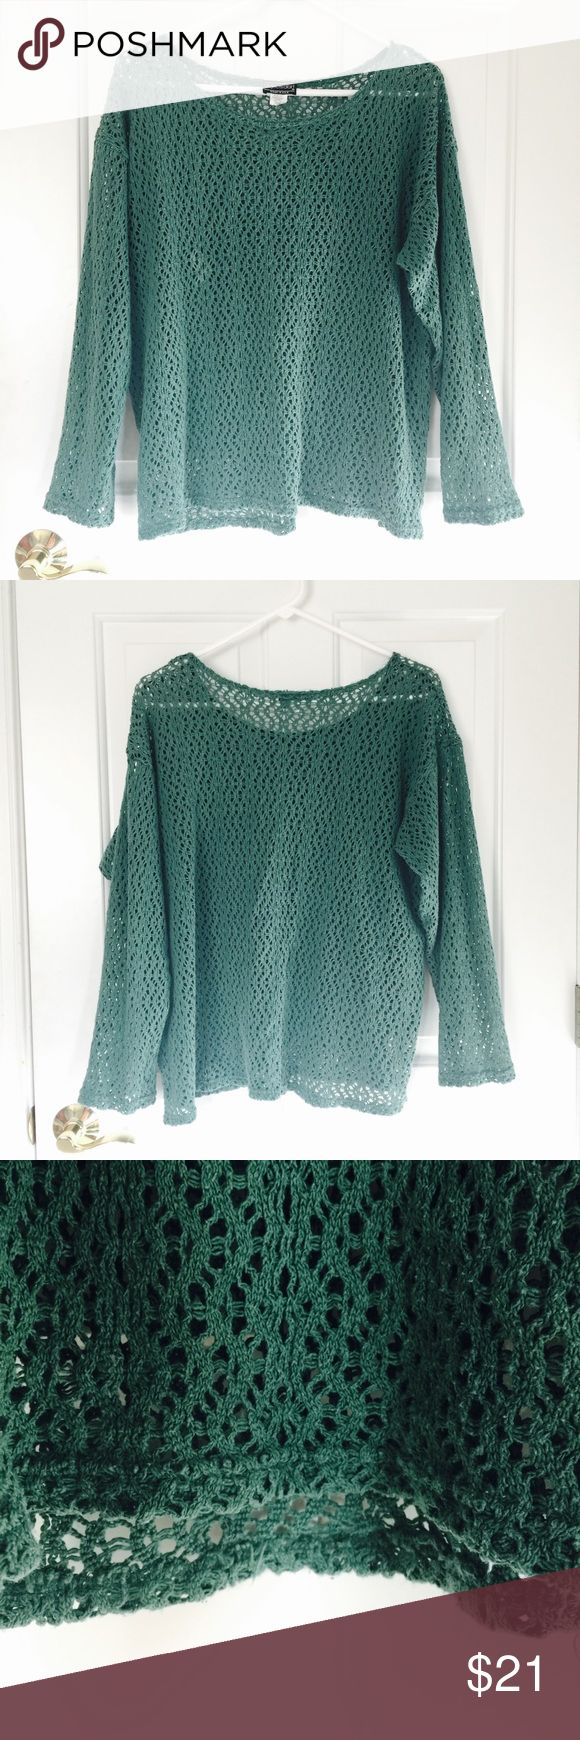 Teal Sweater🐢🌀 The design is knit beautifully and is great for any season! Summer- pairs well with bandeau and high waisted shorts. Winter- pairs well with turtleneck. Fall-crop top underneath and a wide brim hat. Creative your own outfit and standout in this unique top💎🌿🍃 Sweaters Crew & Scoop Necks